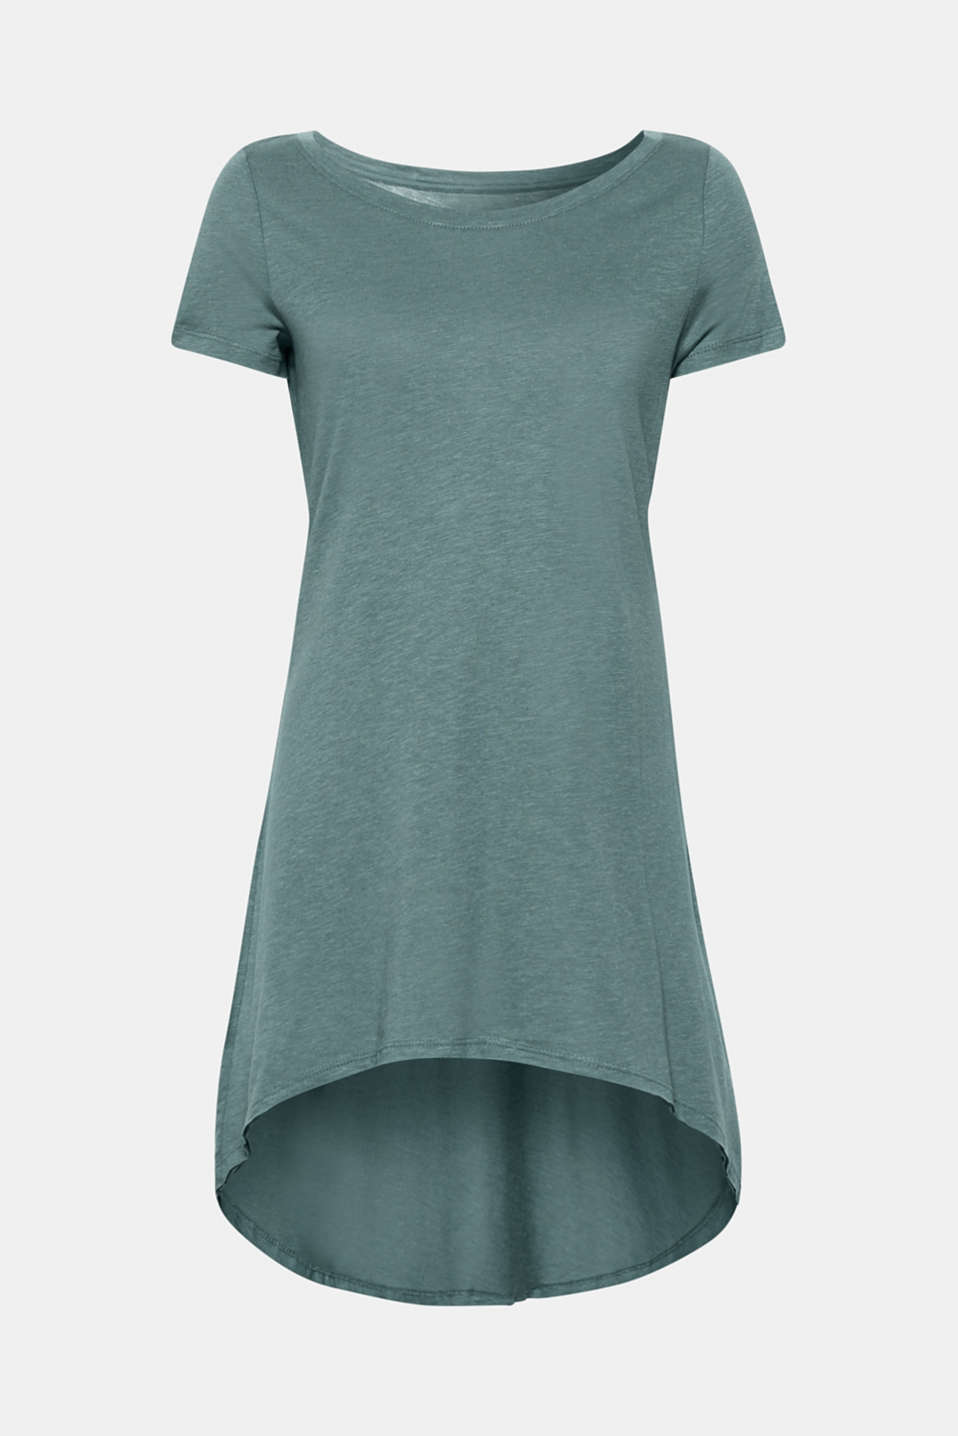 Esprit - Long T-shirt with a striking high-low hem